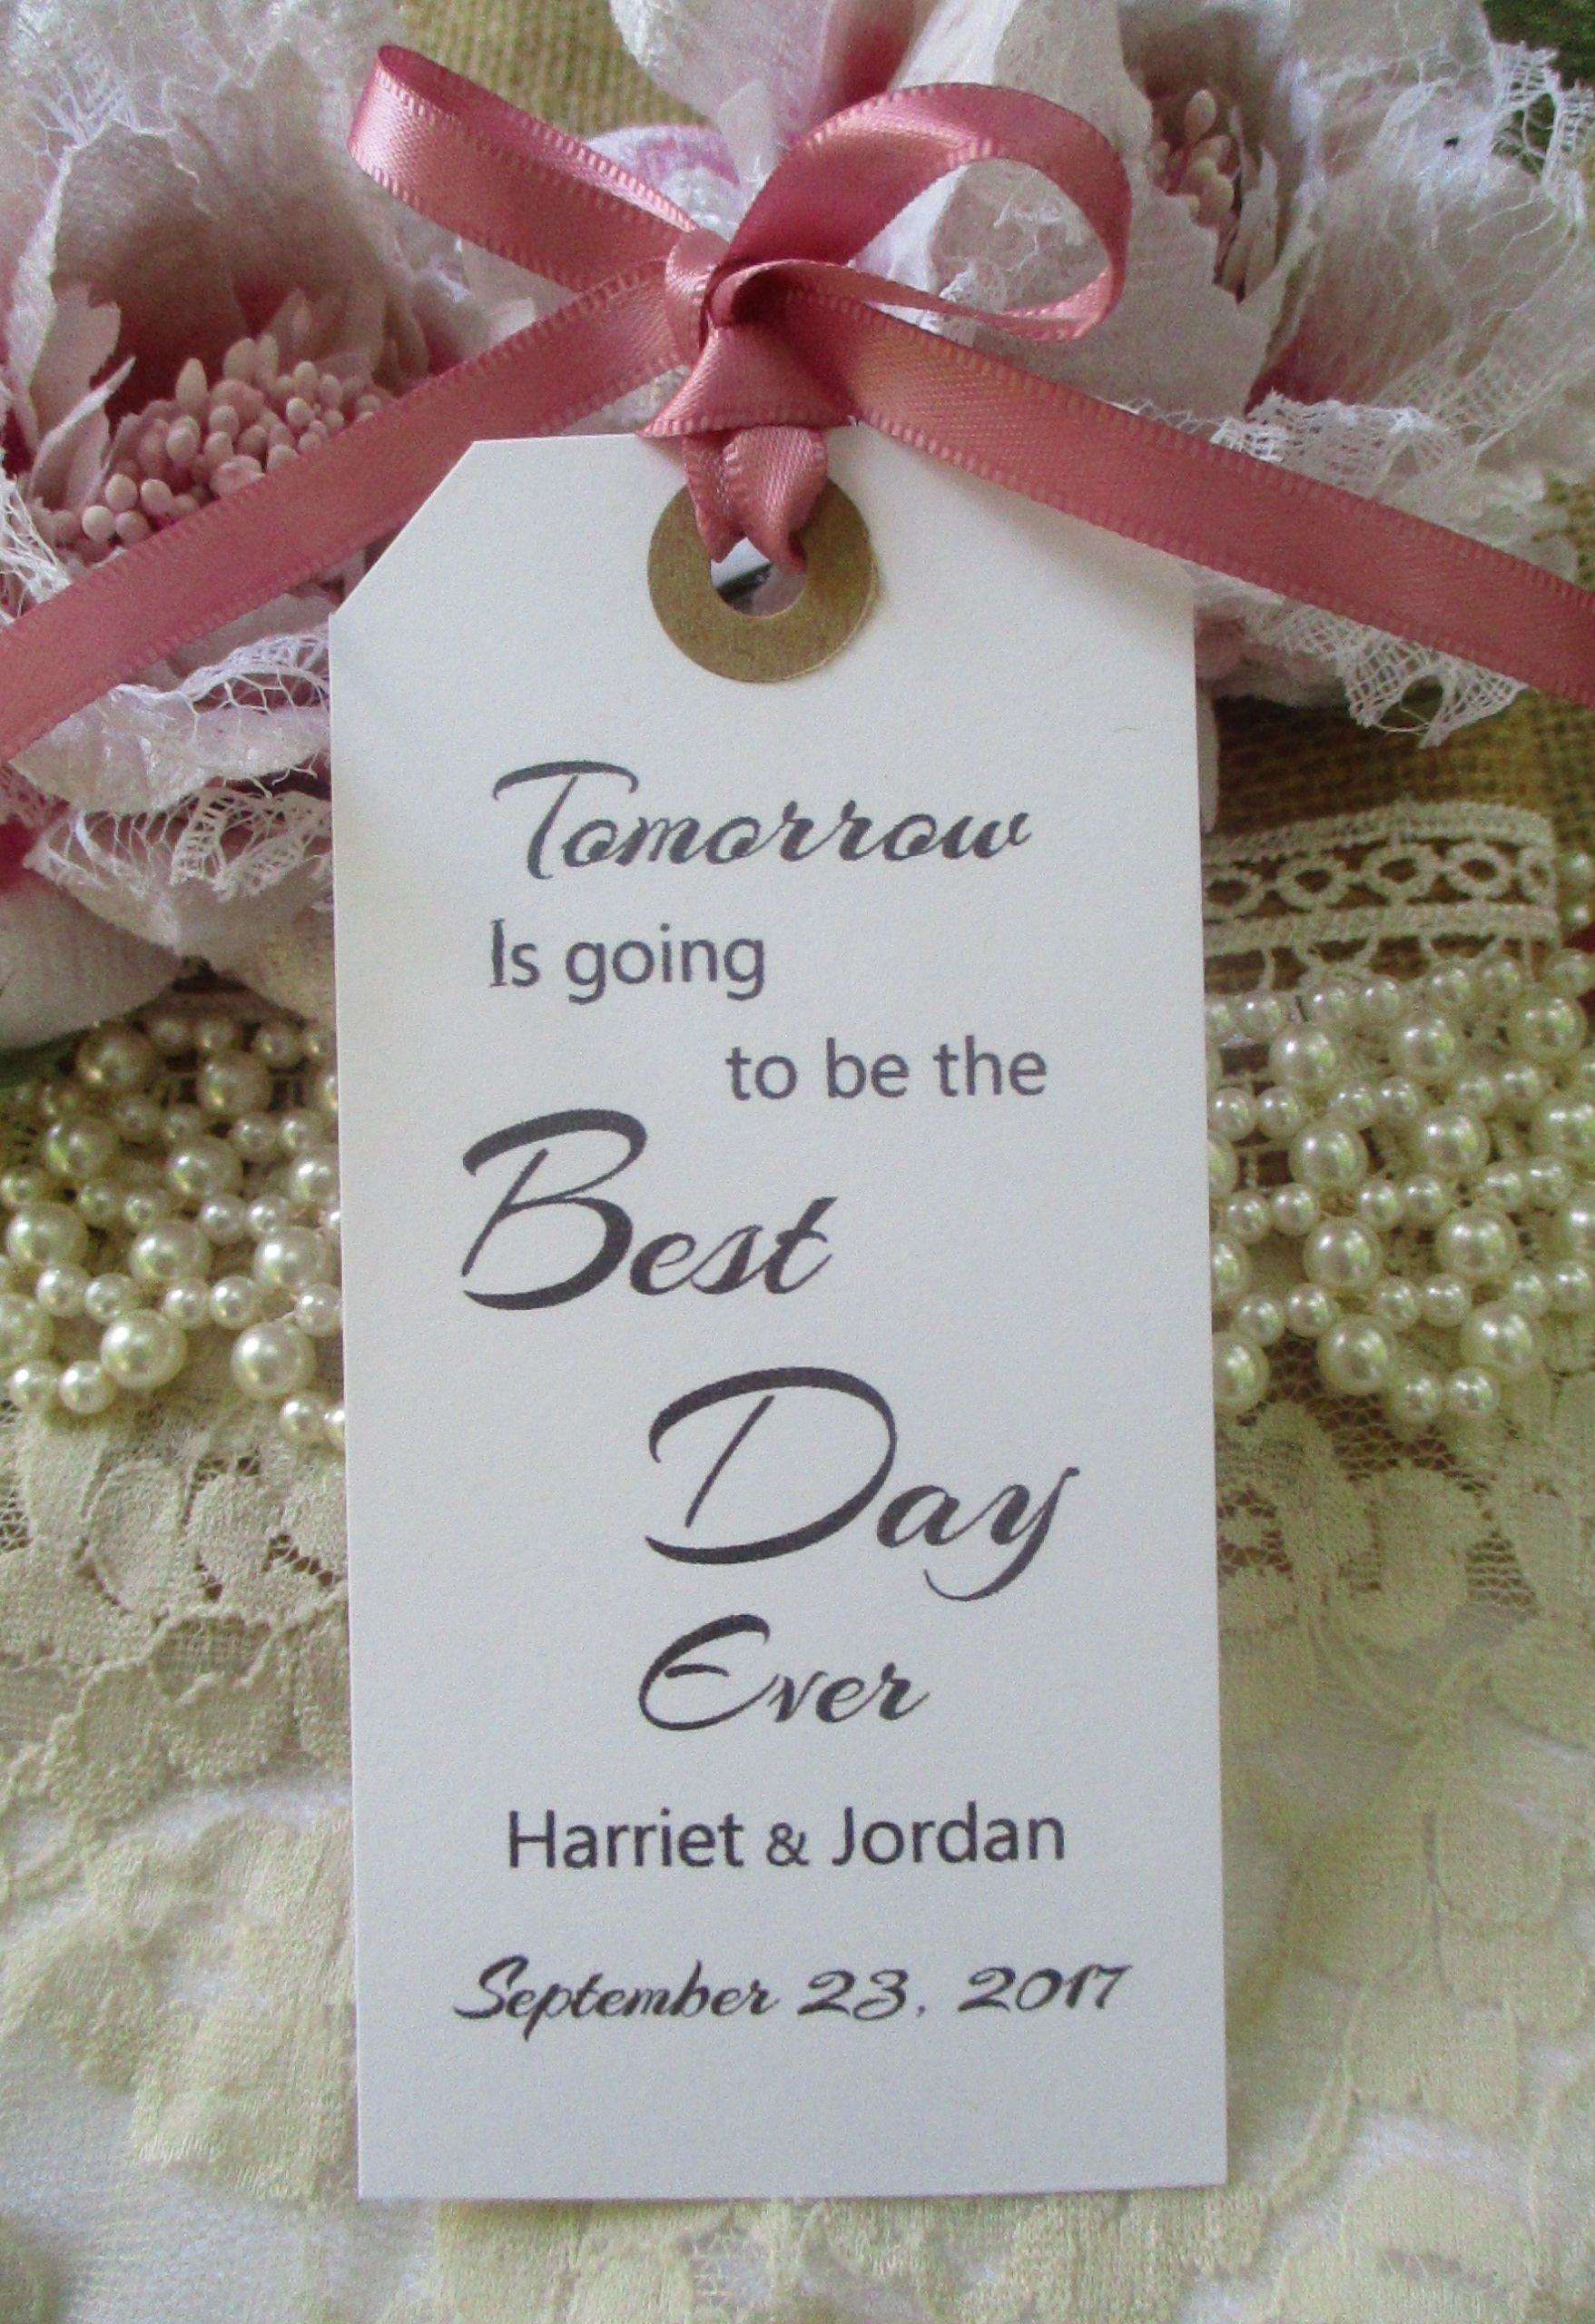 Tomorrow Is Going To Be The Best Day Ever-Personalised Wedding ...